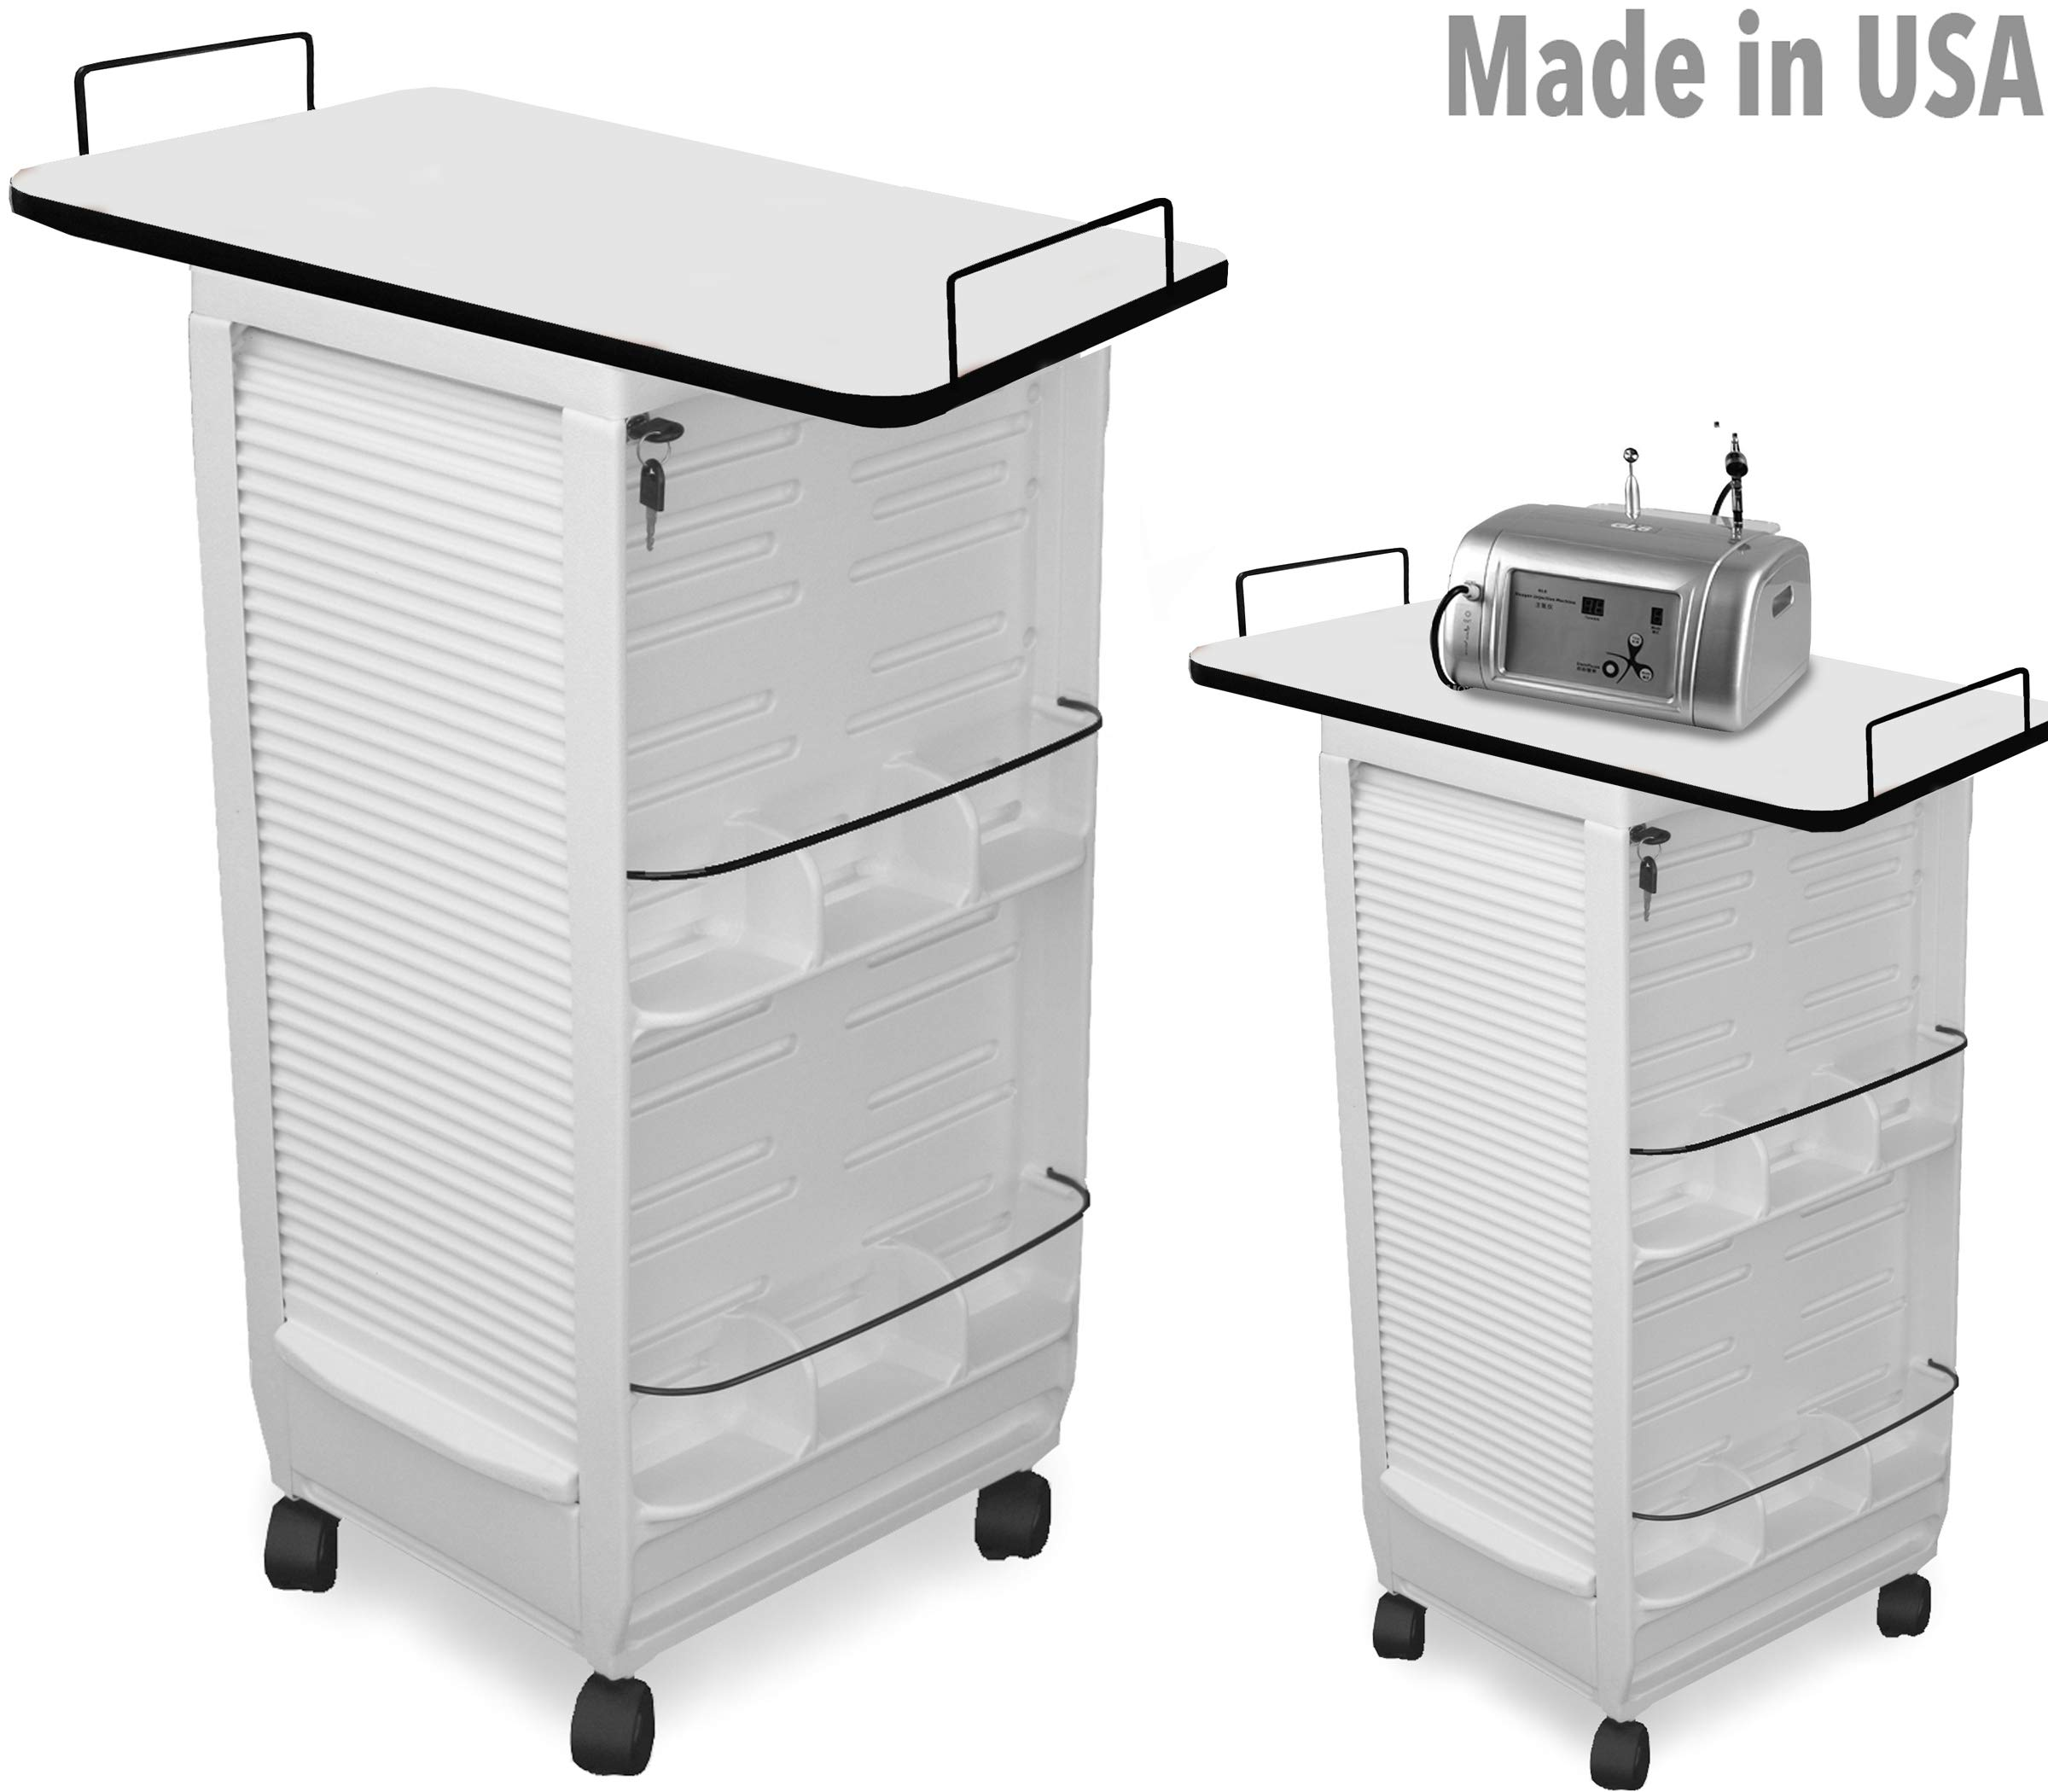 C180E-LT MHF Medical Physician Roll-about Trolley Storage Cart w/109 white Lam. top MADE IN USA